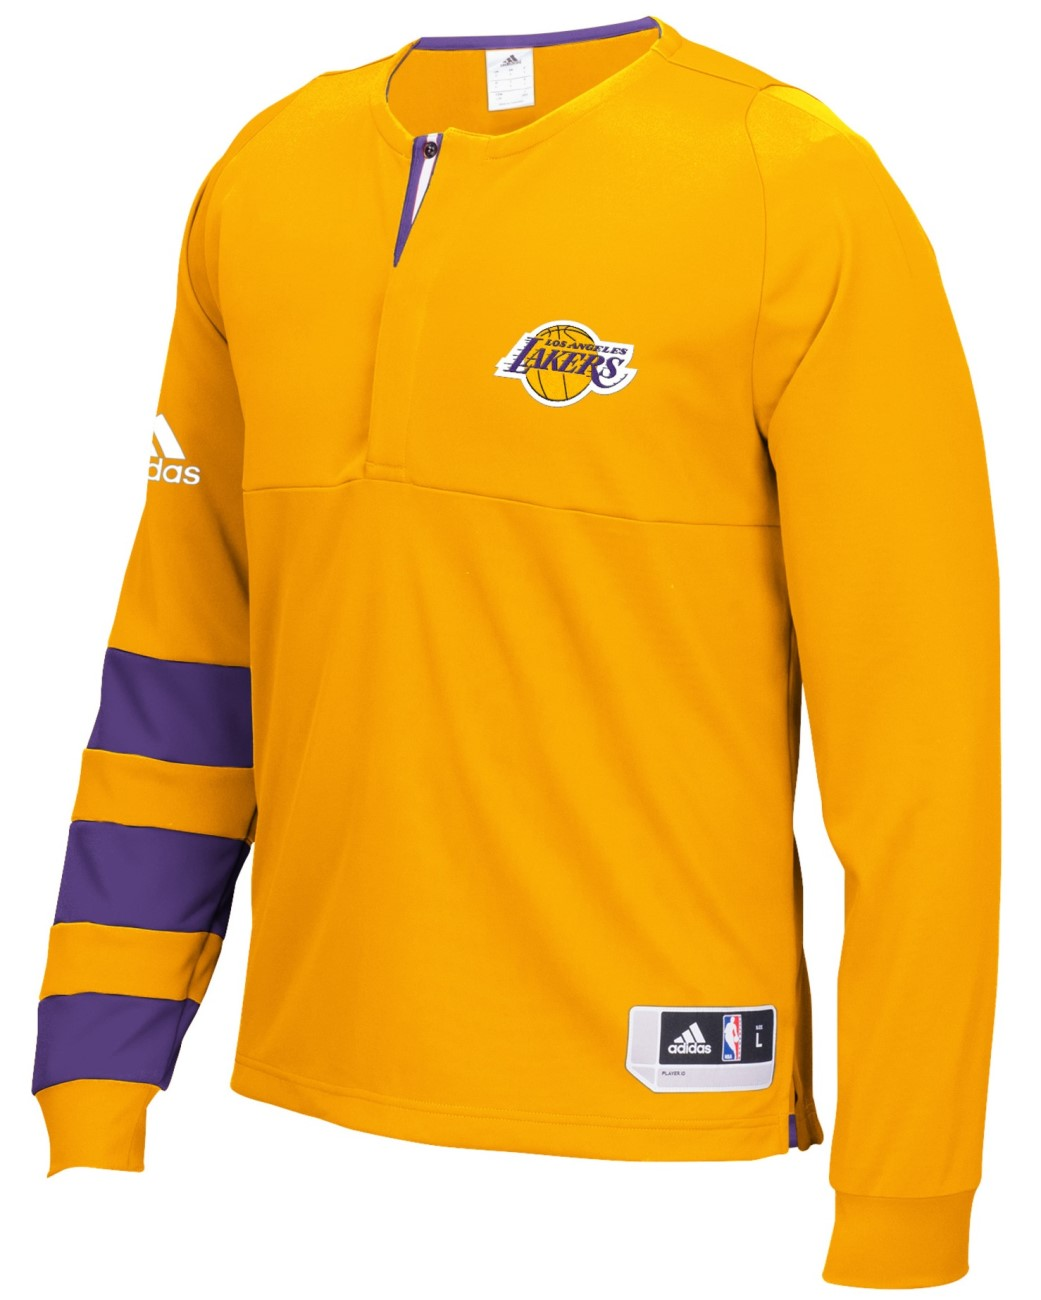 Los Angeles Lakers Adidas 2016 NBA Men's On-Court Authentic L/S Shooting Shirt